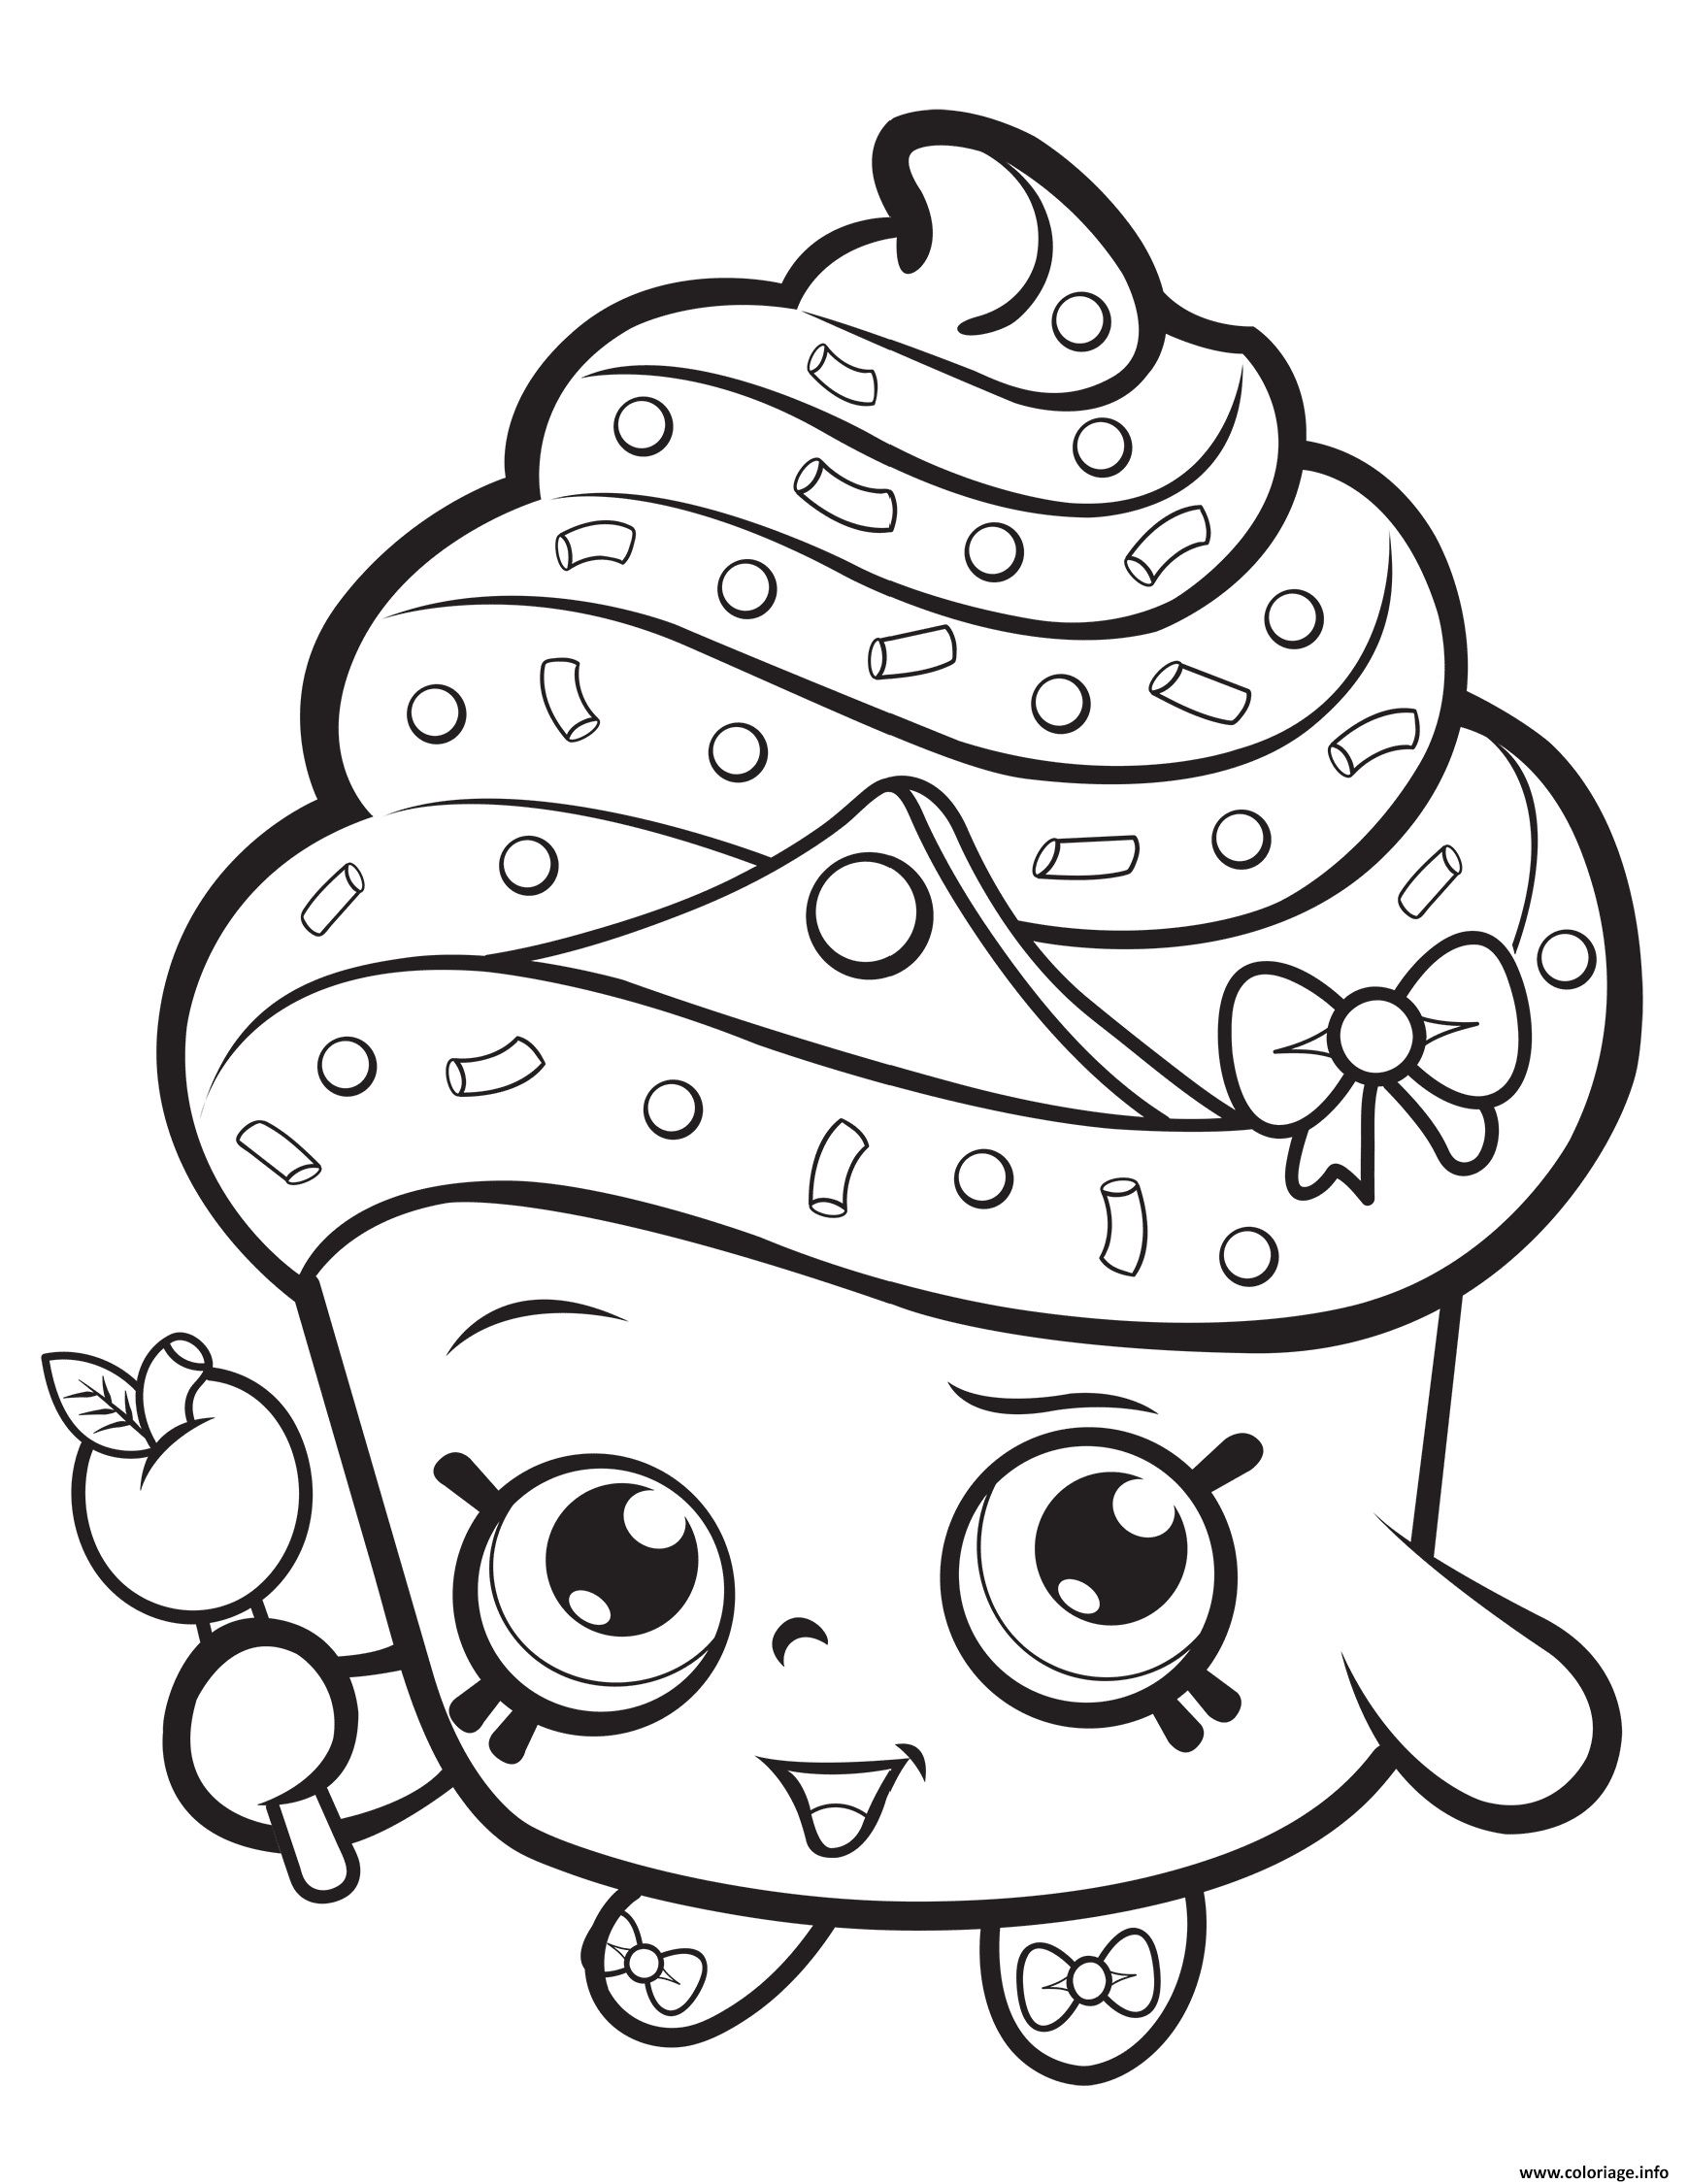 9 Paisible Coloriage Shopkins Gallery En 2020 Coloriage Shopkins Coloriage Coloriage Printemps